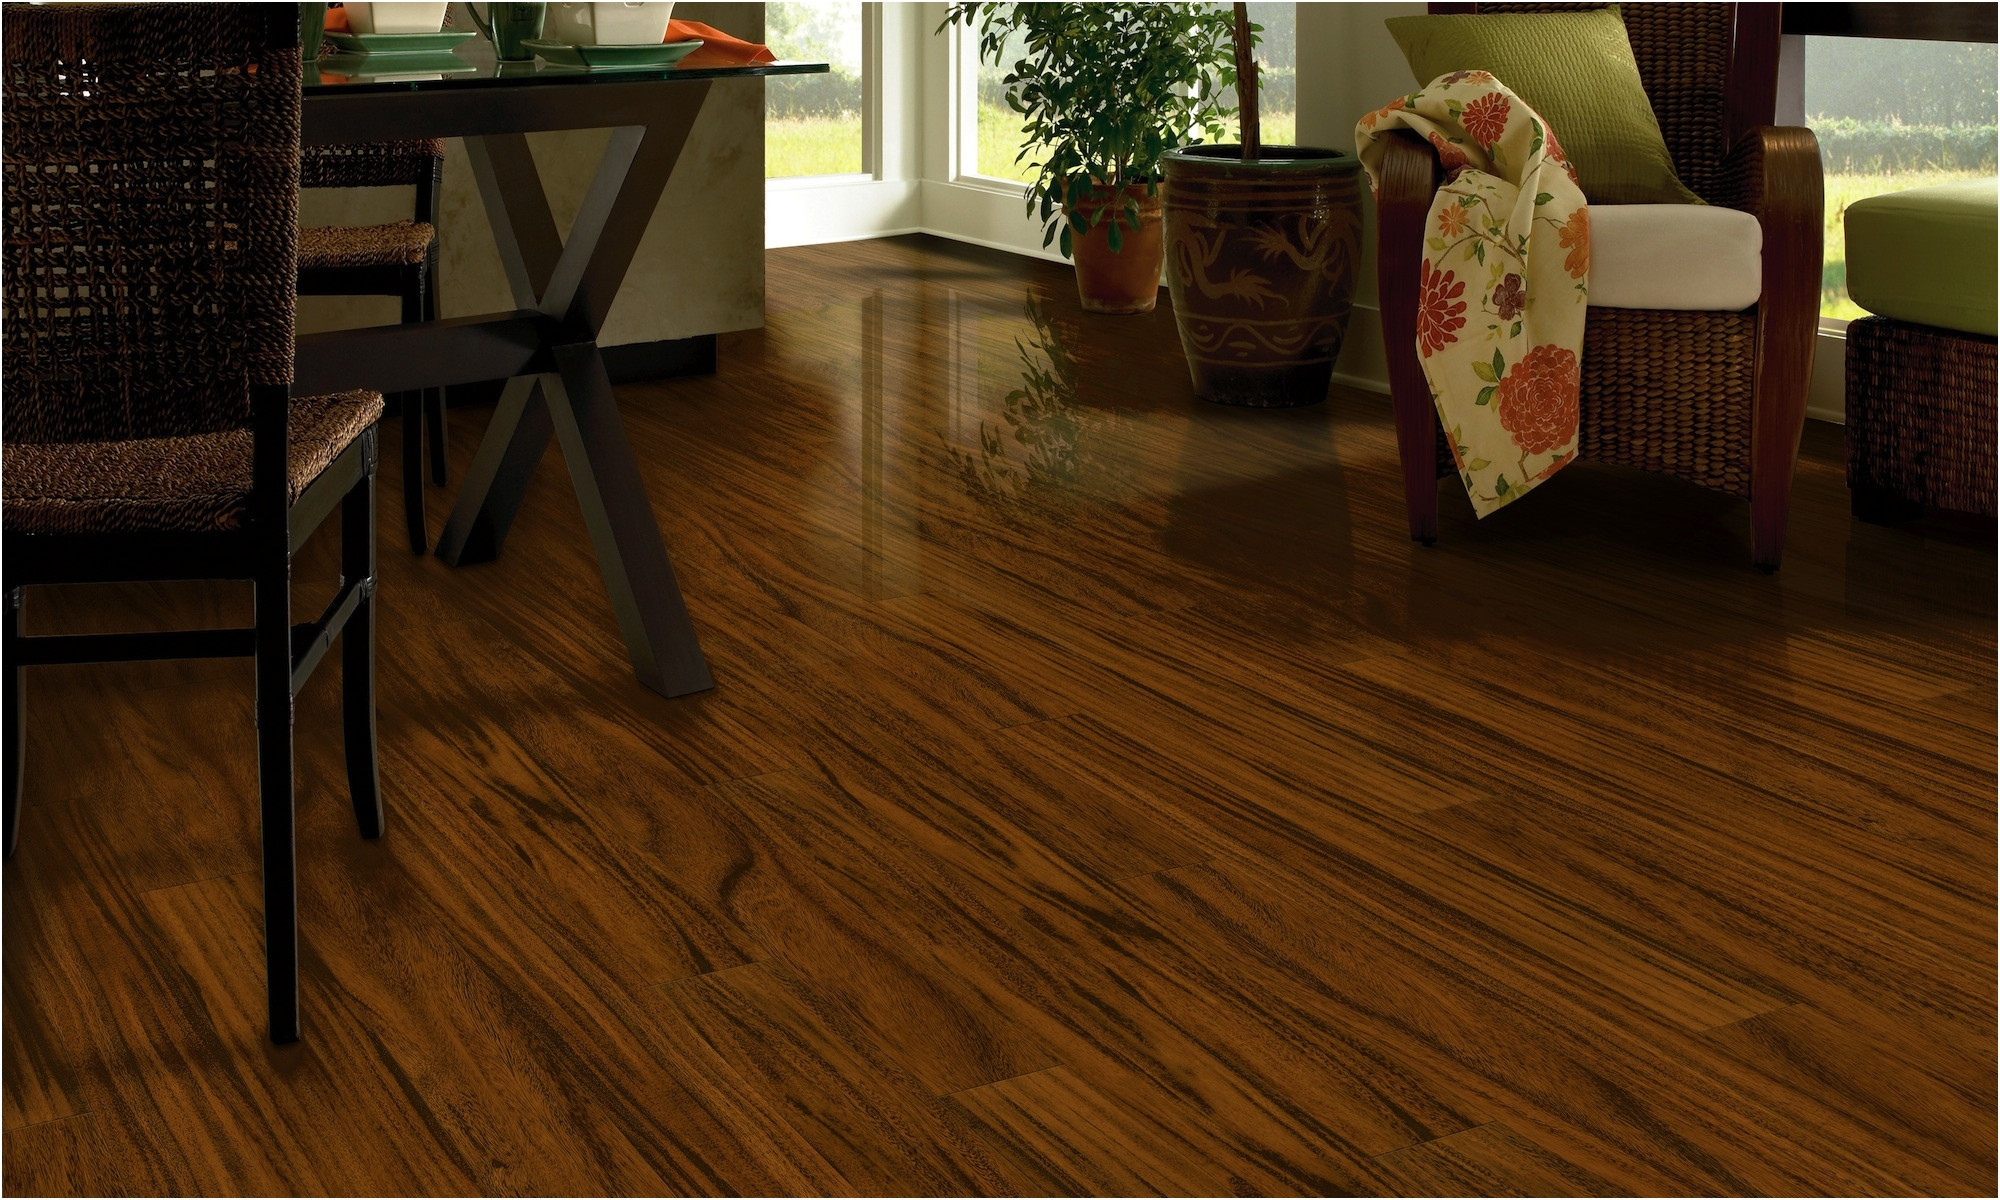 bruce hardwood flooring spice of best hand scraped hardwood flooring reviews galerie floor striking with regard to best hand scraped hardwood flooring reviews galerie floor striking bruce hardwood floors s ideas plano marsh